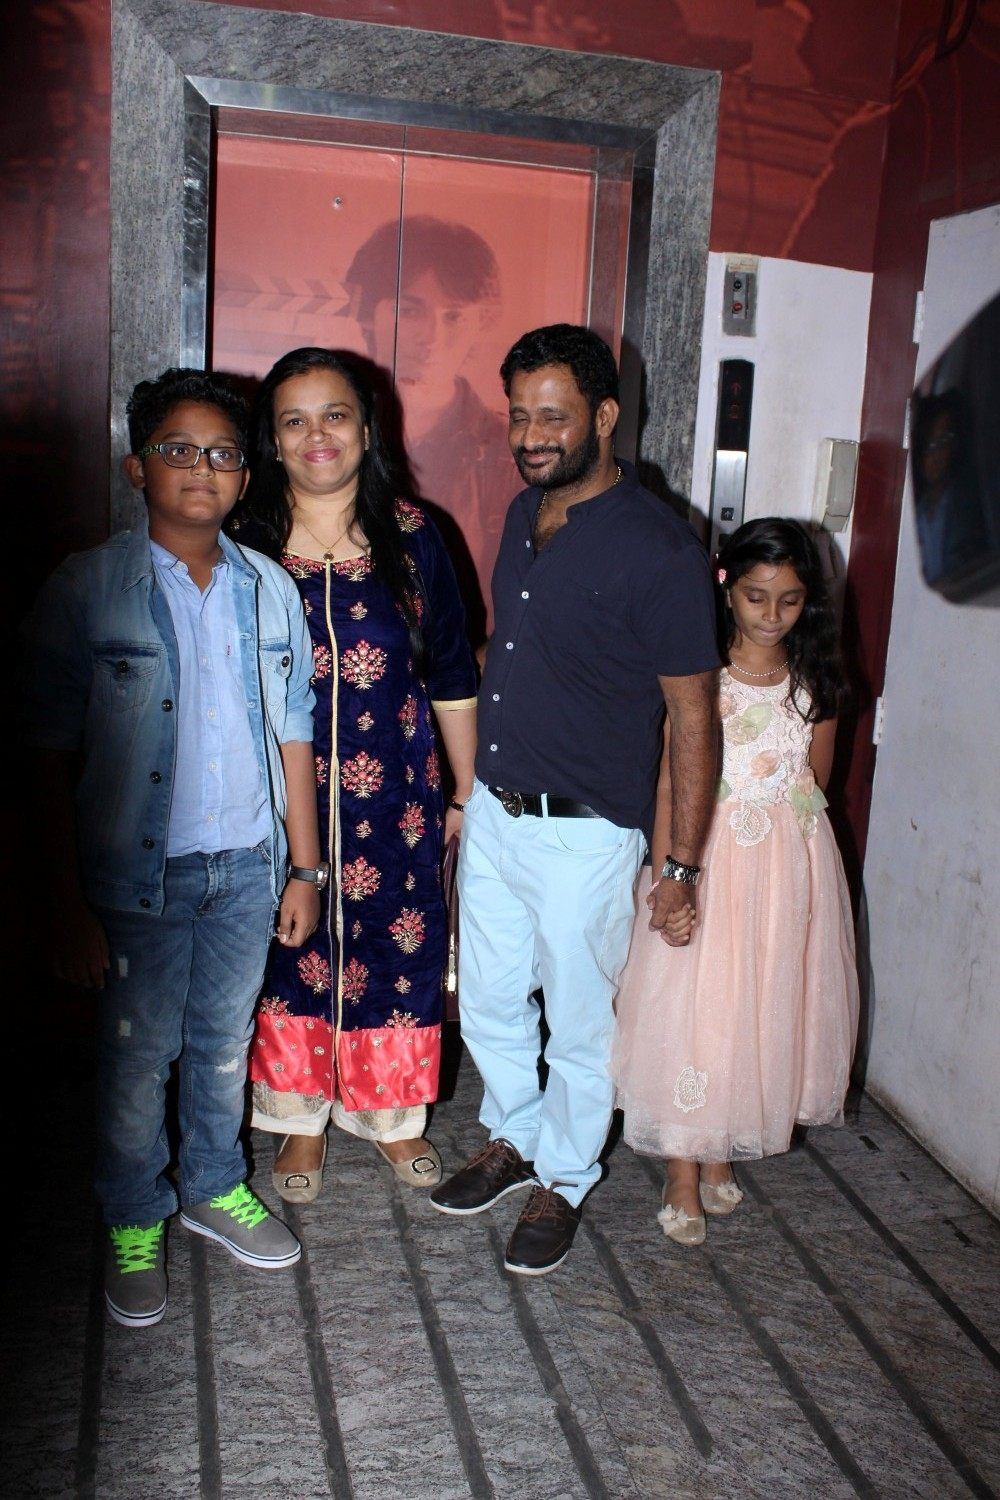 Mumbai: Rasool Pookutty with his family during special sreening of film Kaabil in Mumbai on Jan 22, 2017. (Photo: (IANS)